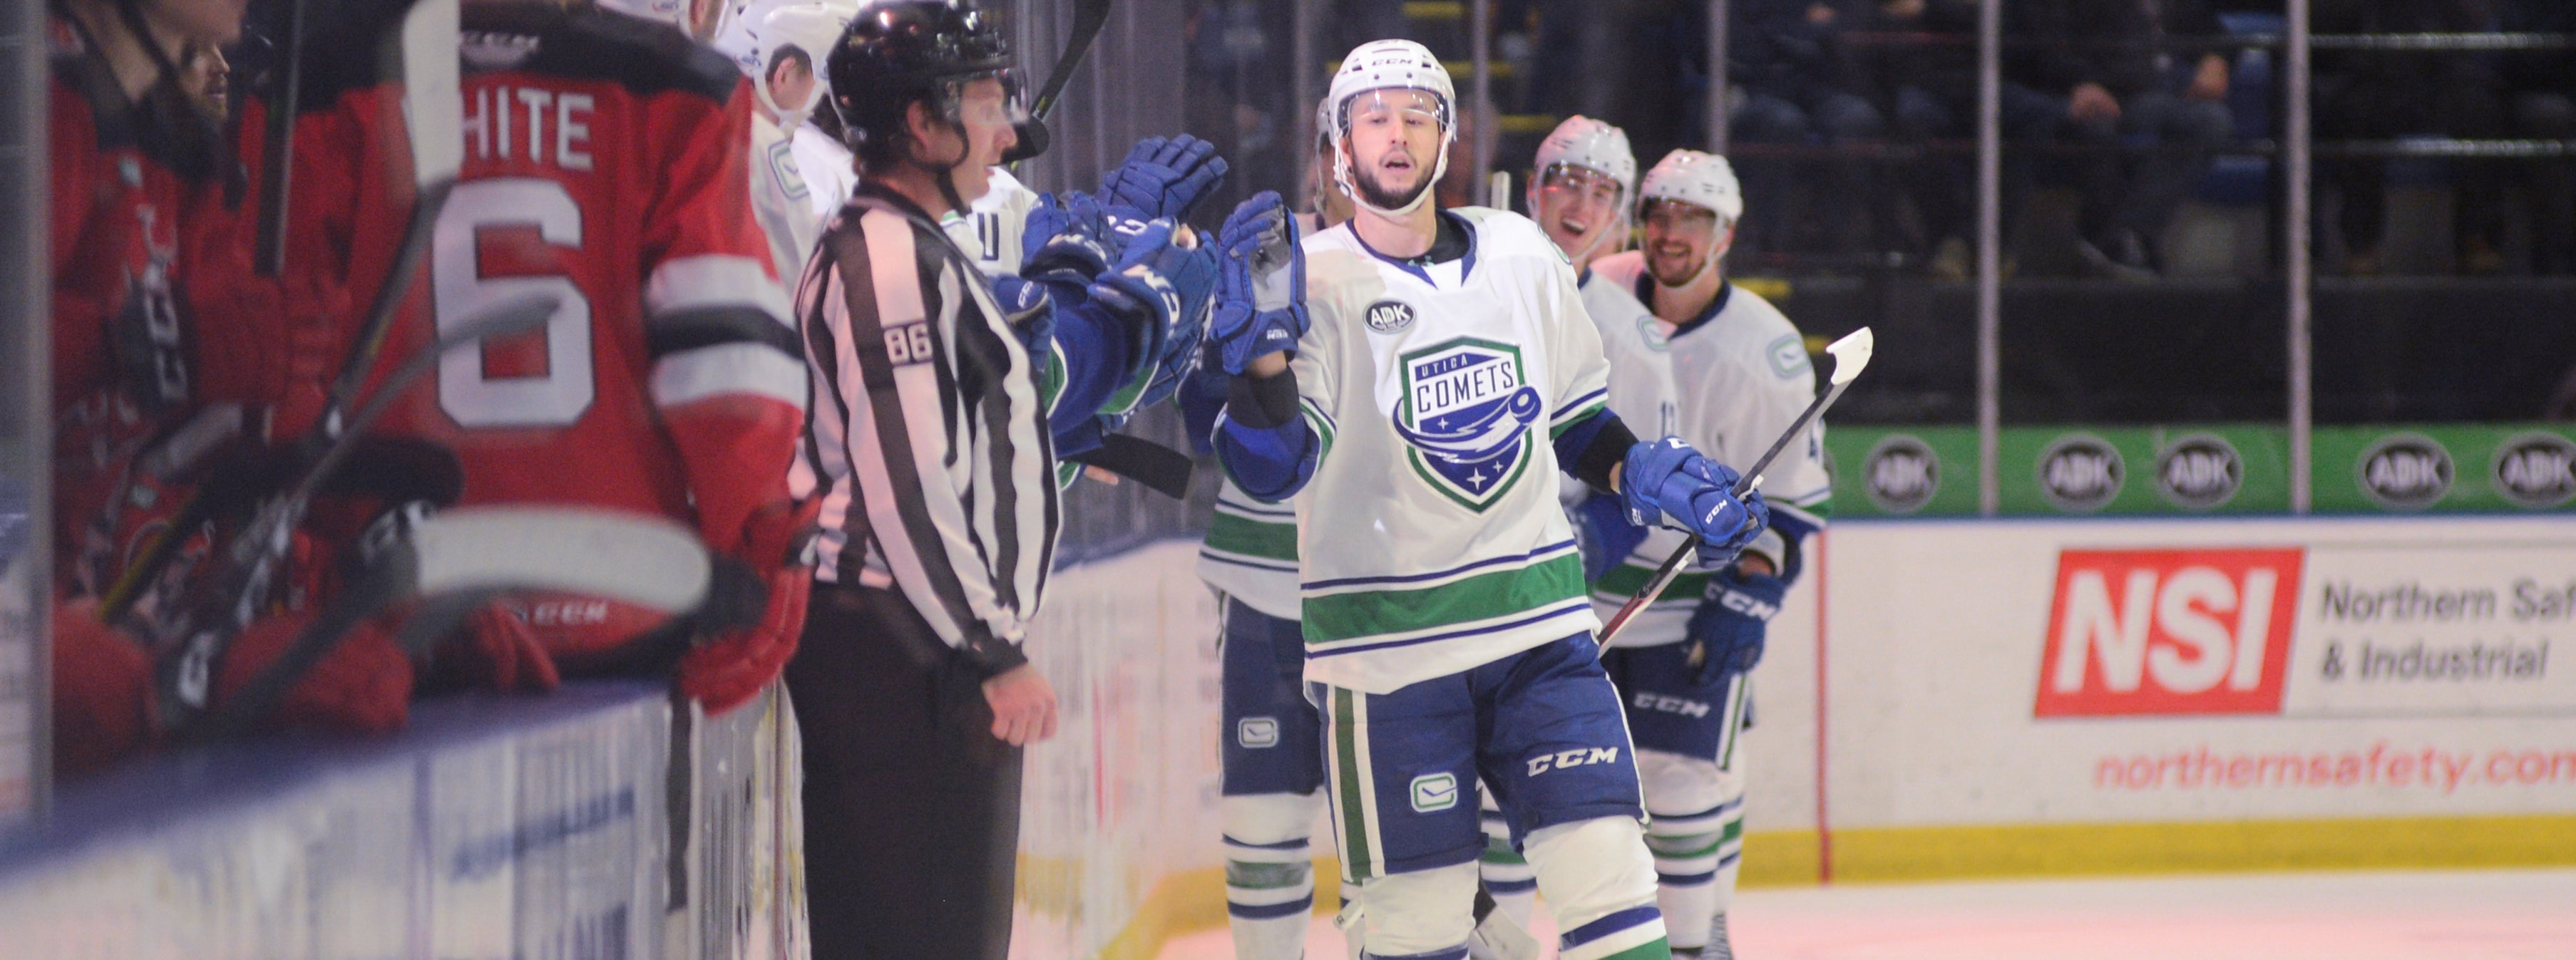 COMETS GRIND OUT WIN OVER BINGHAMTON TO STAY UNDEFEATED